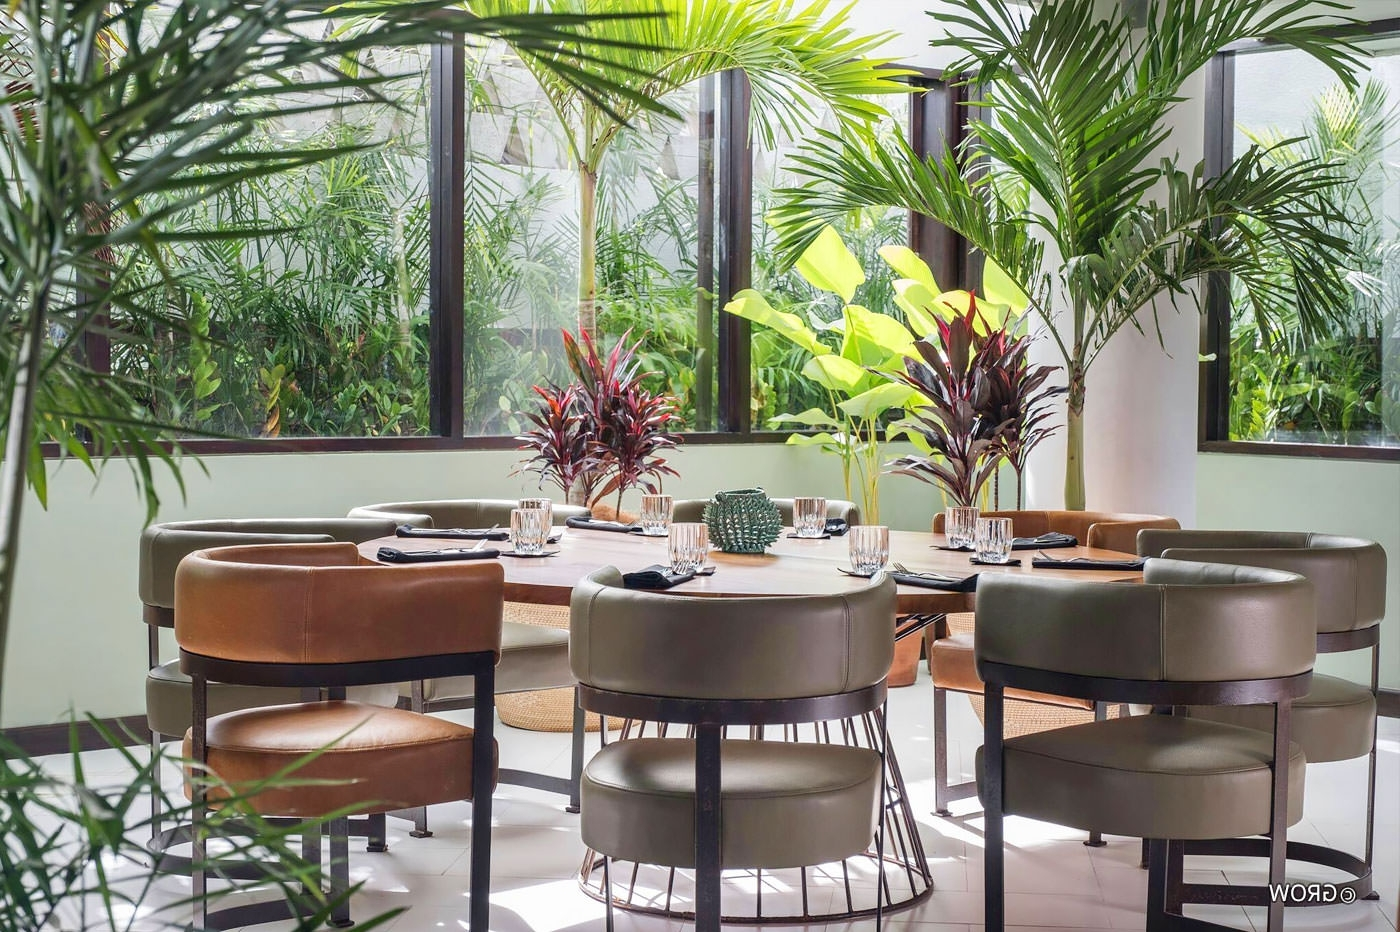 Balinese Dining Tables Intended For Widely Used Grow Bali Restaurant – Bali Magazine (View 5 of 25)